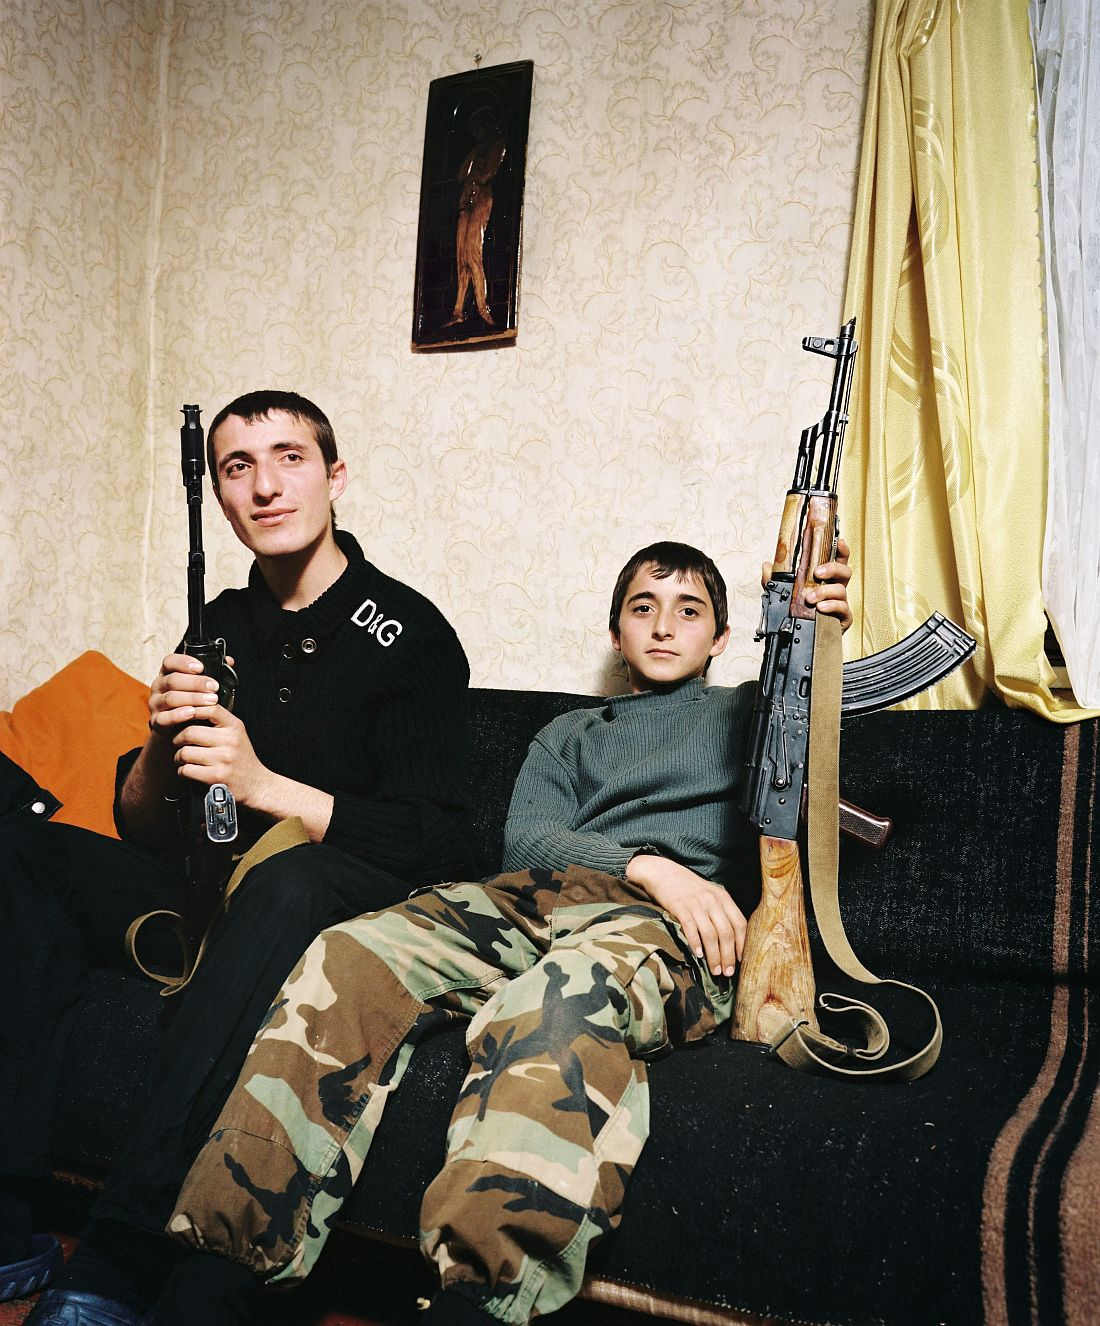 Kuabchara, ABKHAZIA, 2009 - Brothers Zashrikwa (17) and Edrese (14) pose proudly with a Kalashnikov on the sofa in their aunt and uncle's house. They live in the Kodori Valley, a remote mountainous region on the border between Abkhazia and Georgia. In August 2008, Abkhazia gained control of the officially demilitarised Kodori Valley. The valley's 2,000 Georgian inhabitants fled over the border. A few families refused to be driven out: 'We are mountain people. Borders don't mean very much to us. But if I had to choose between a Georgian and an Abkhazian passport, I would choose a Georgian one.' © ROB HORNSTRA/+31 6 14365936